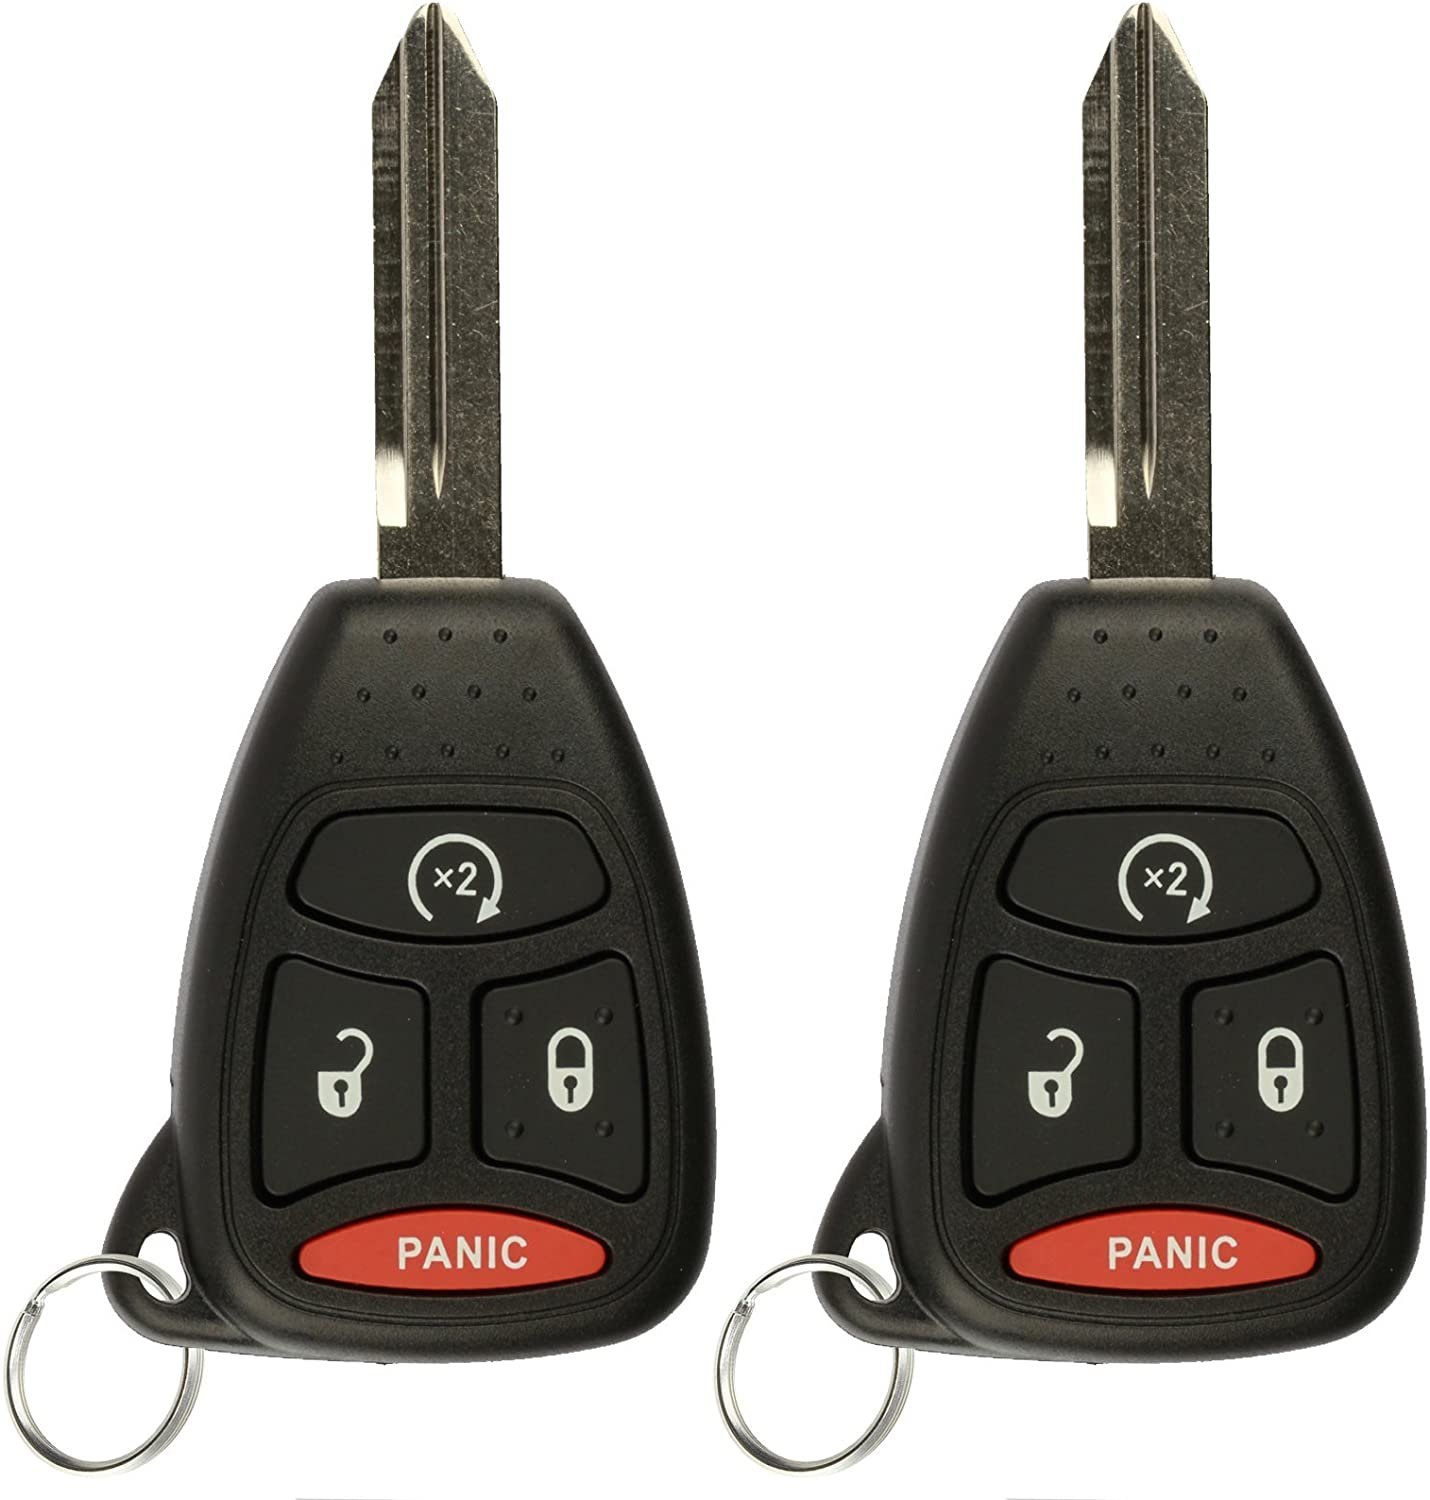 KeylessOption Keyless Entry Remote Control Uncut Car Key Fob Replacement for OHT692427AA KOBDT04A Pack of 2